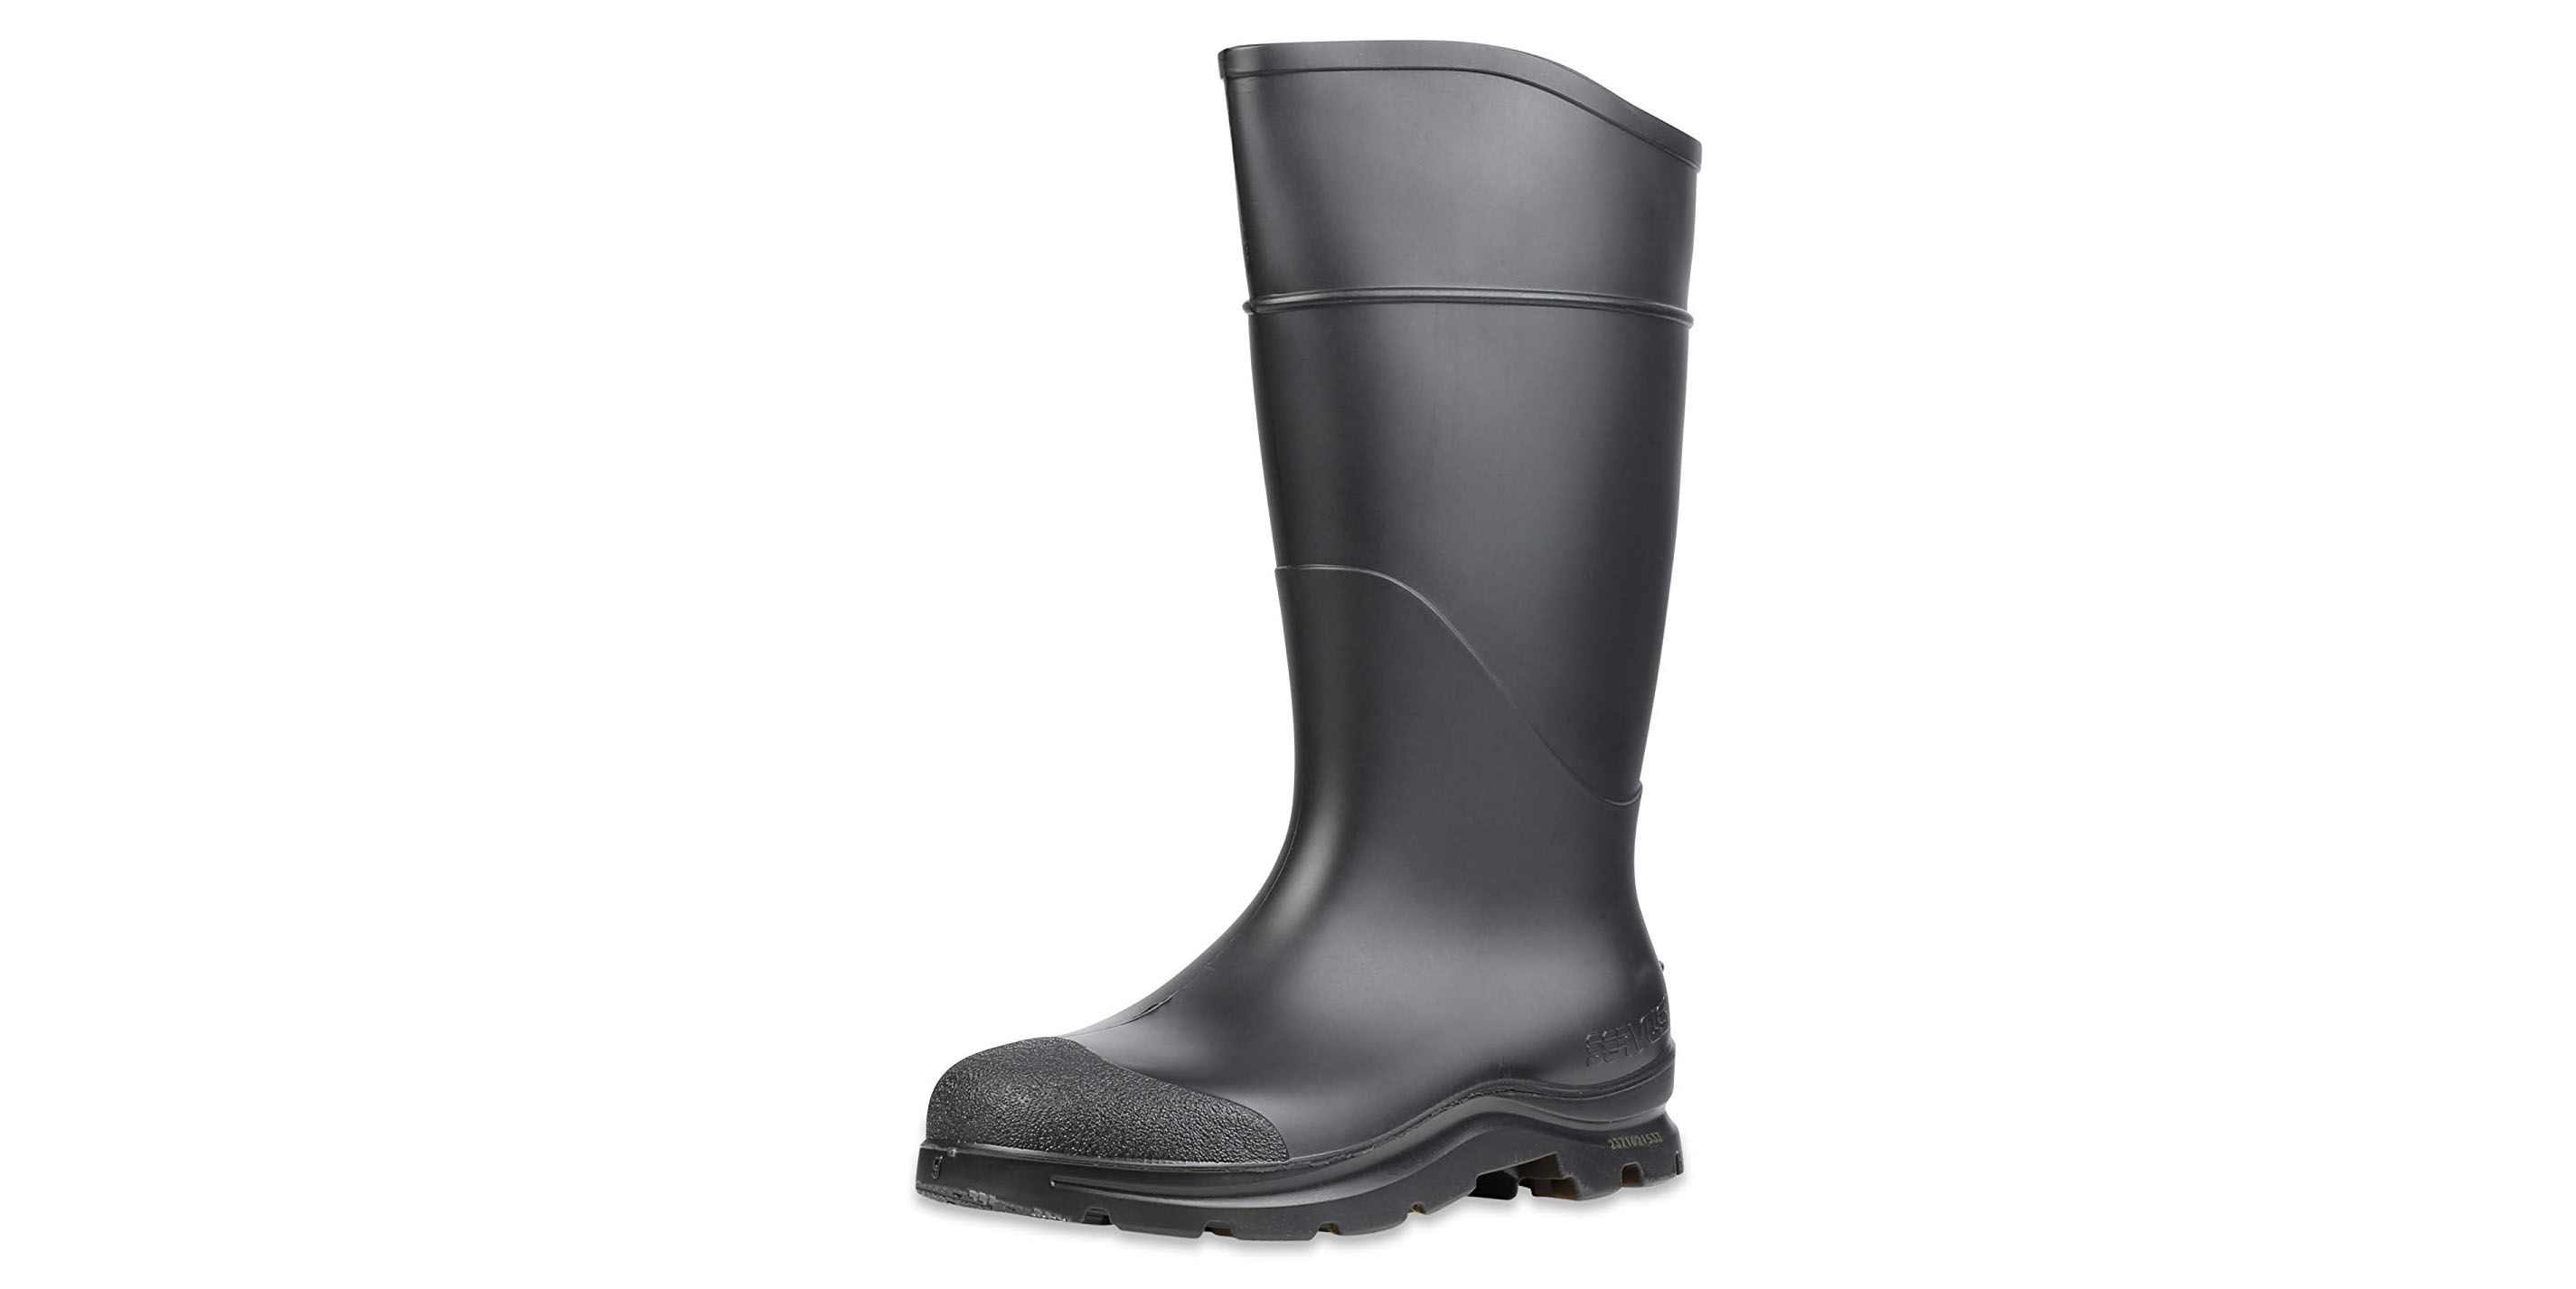 Mud Boots 2019   Best Rubber Boots